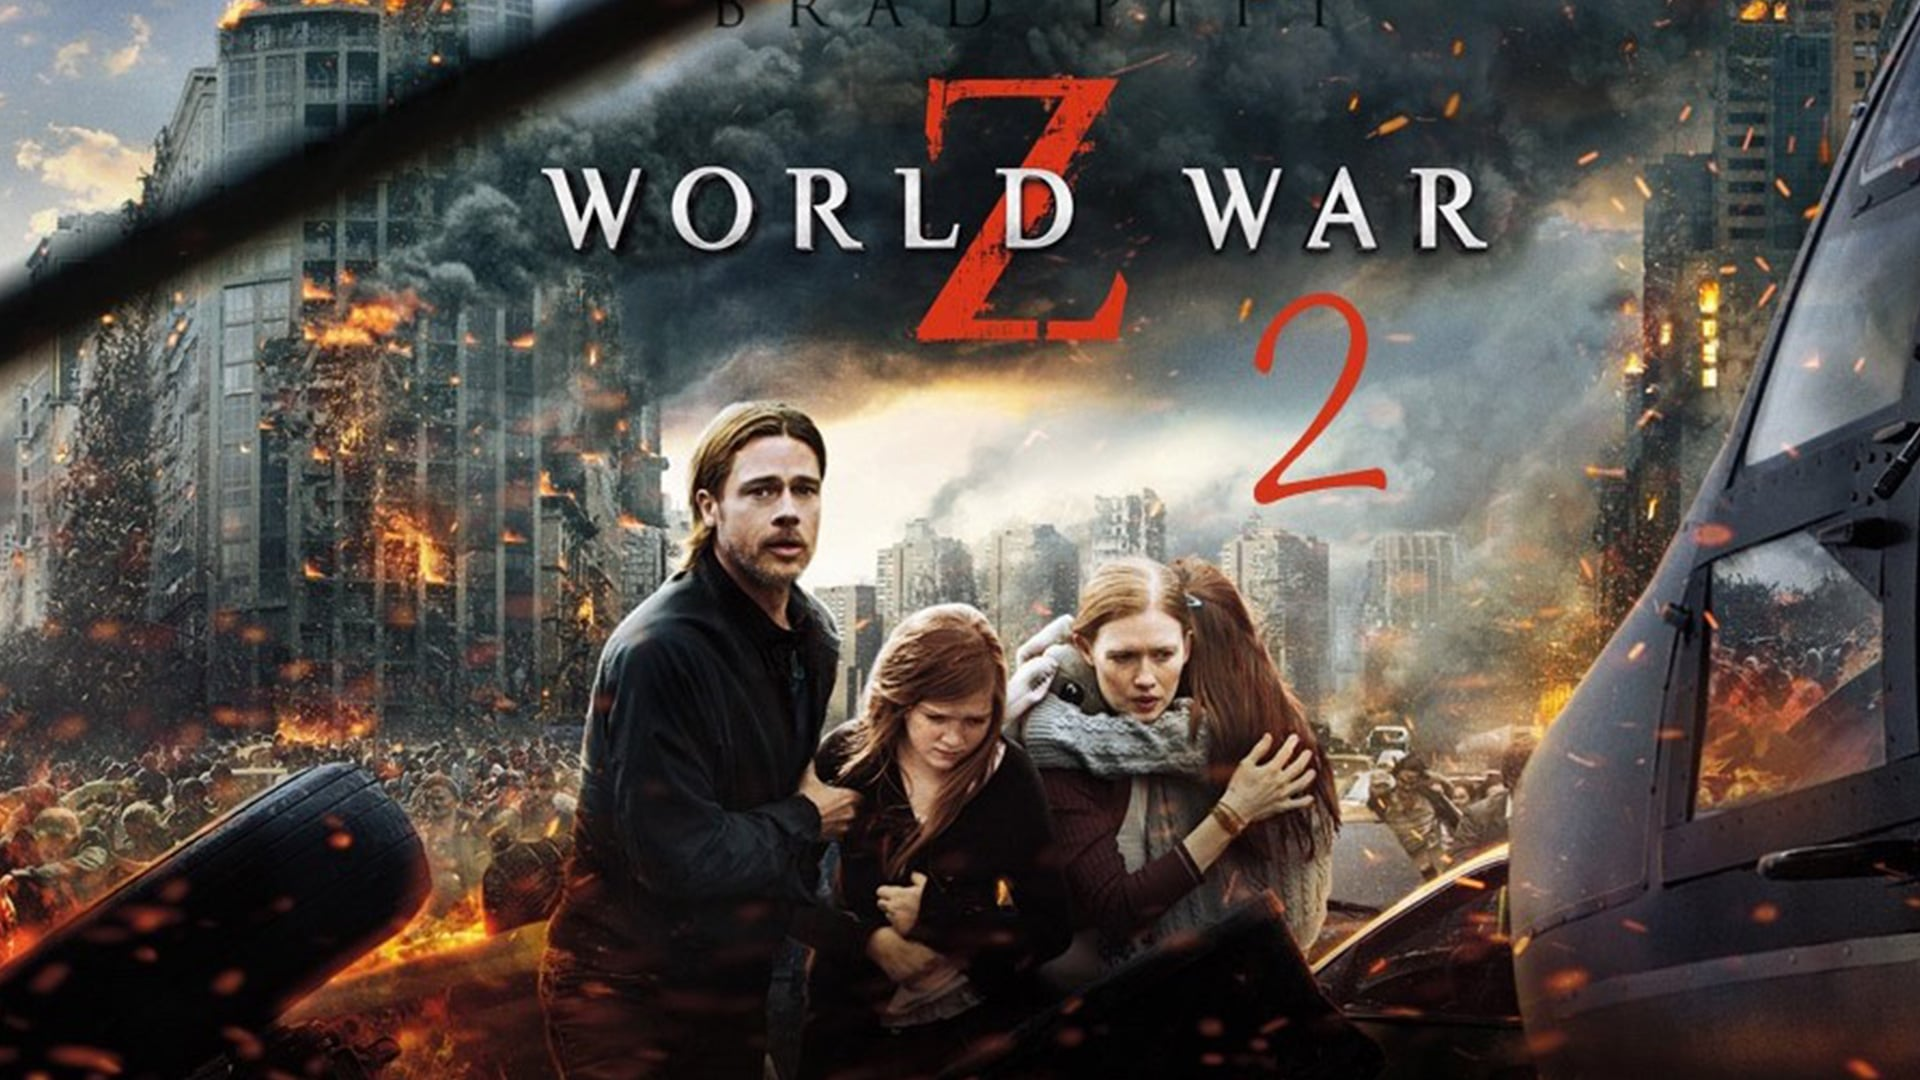 UPDATE] David Fincher's 'World War Z 2' Reportedly Starts